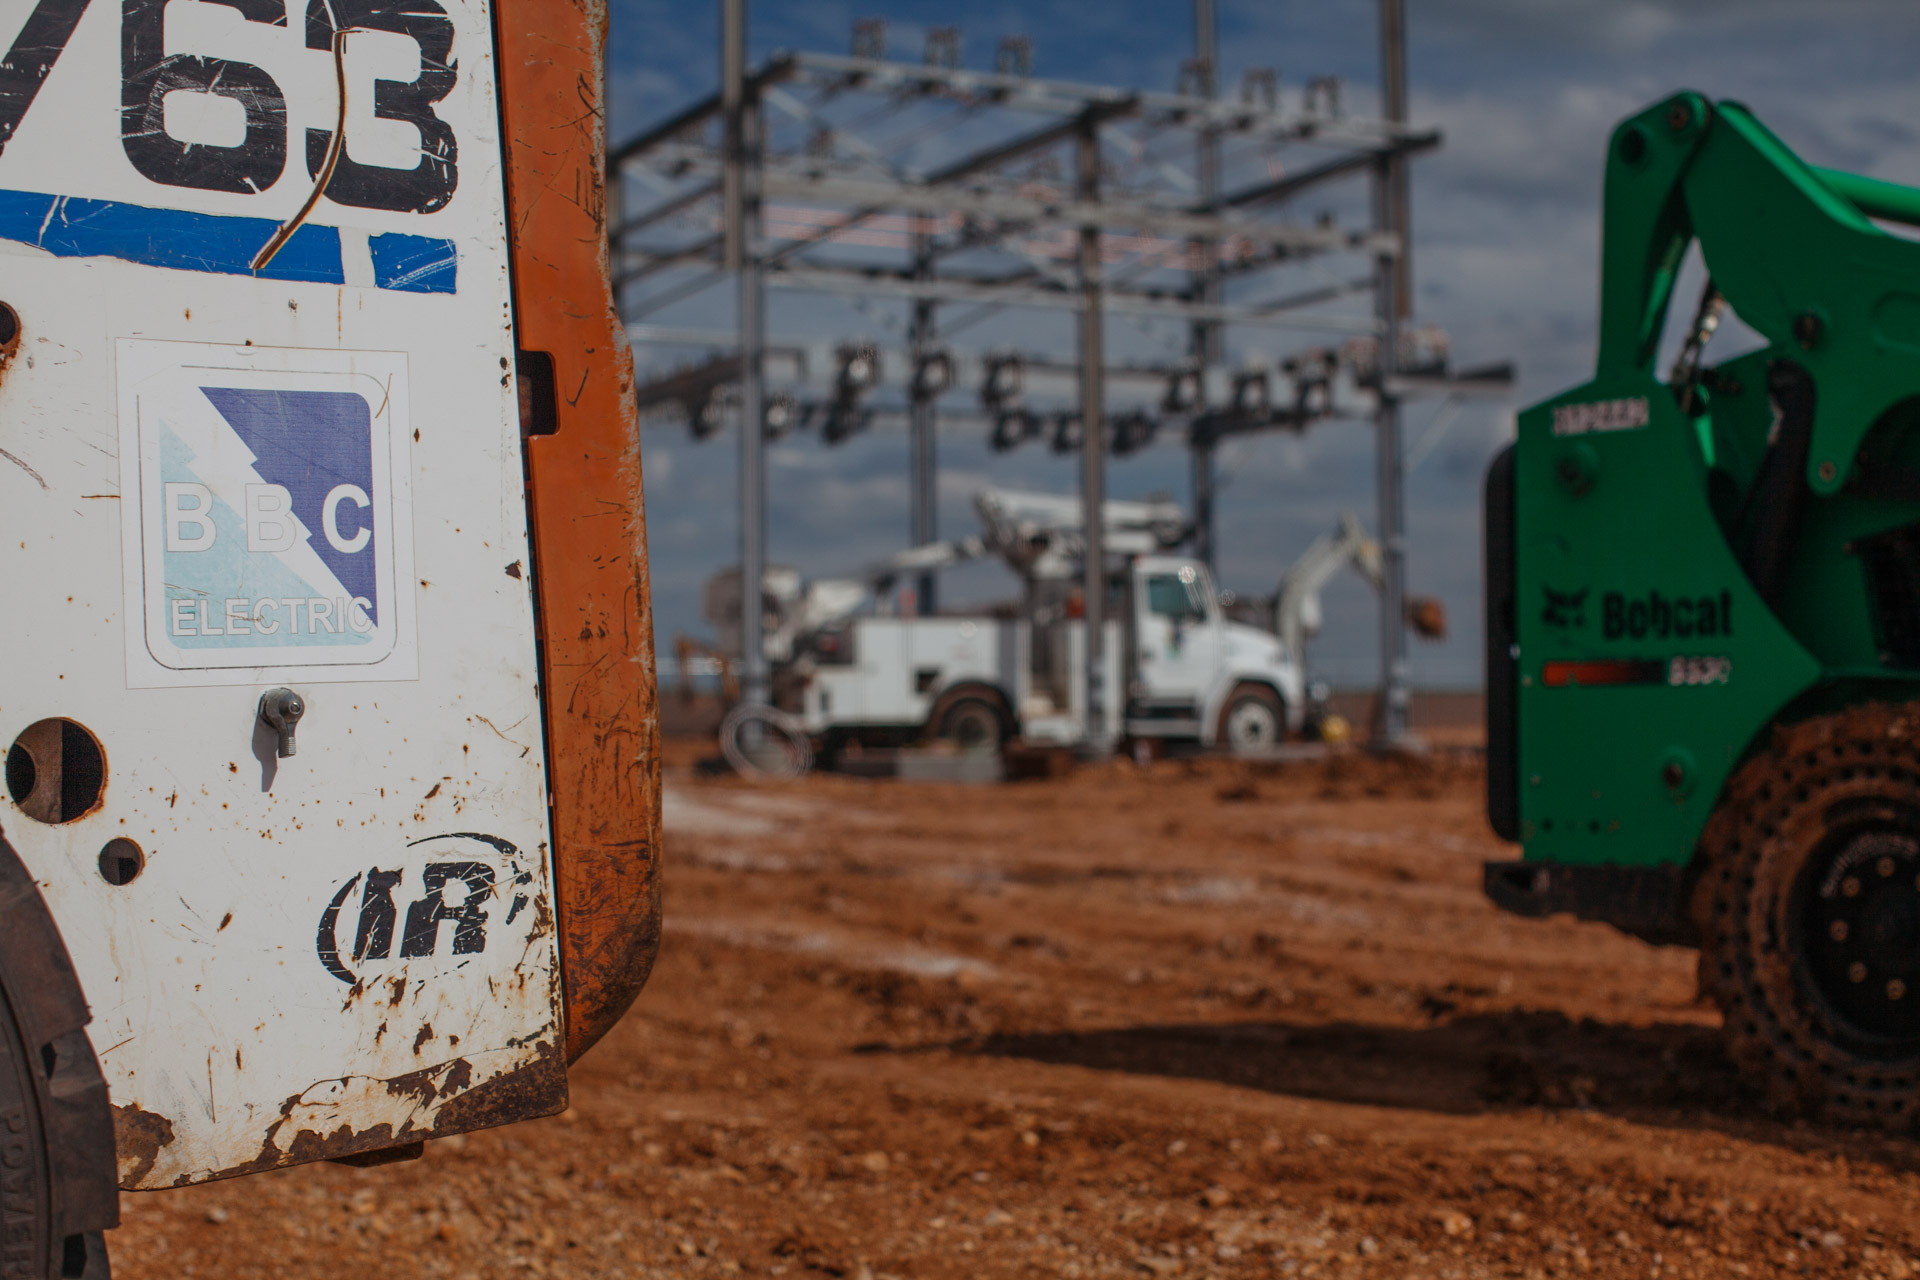 Image of closeup of BBC Electric truck with Joplin, MO's Empire Substation construction site in background.